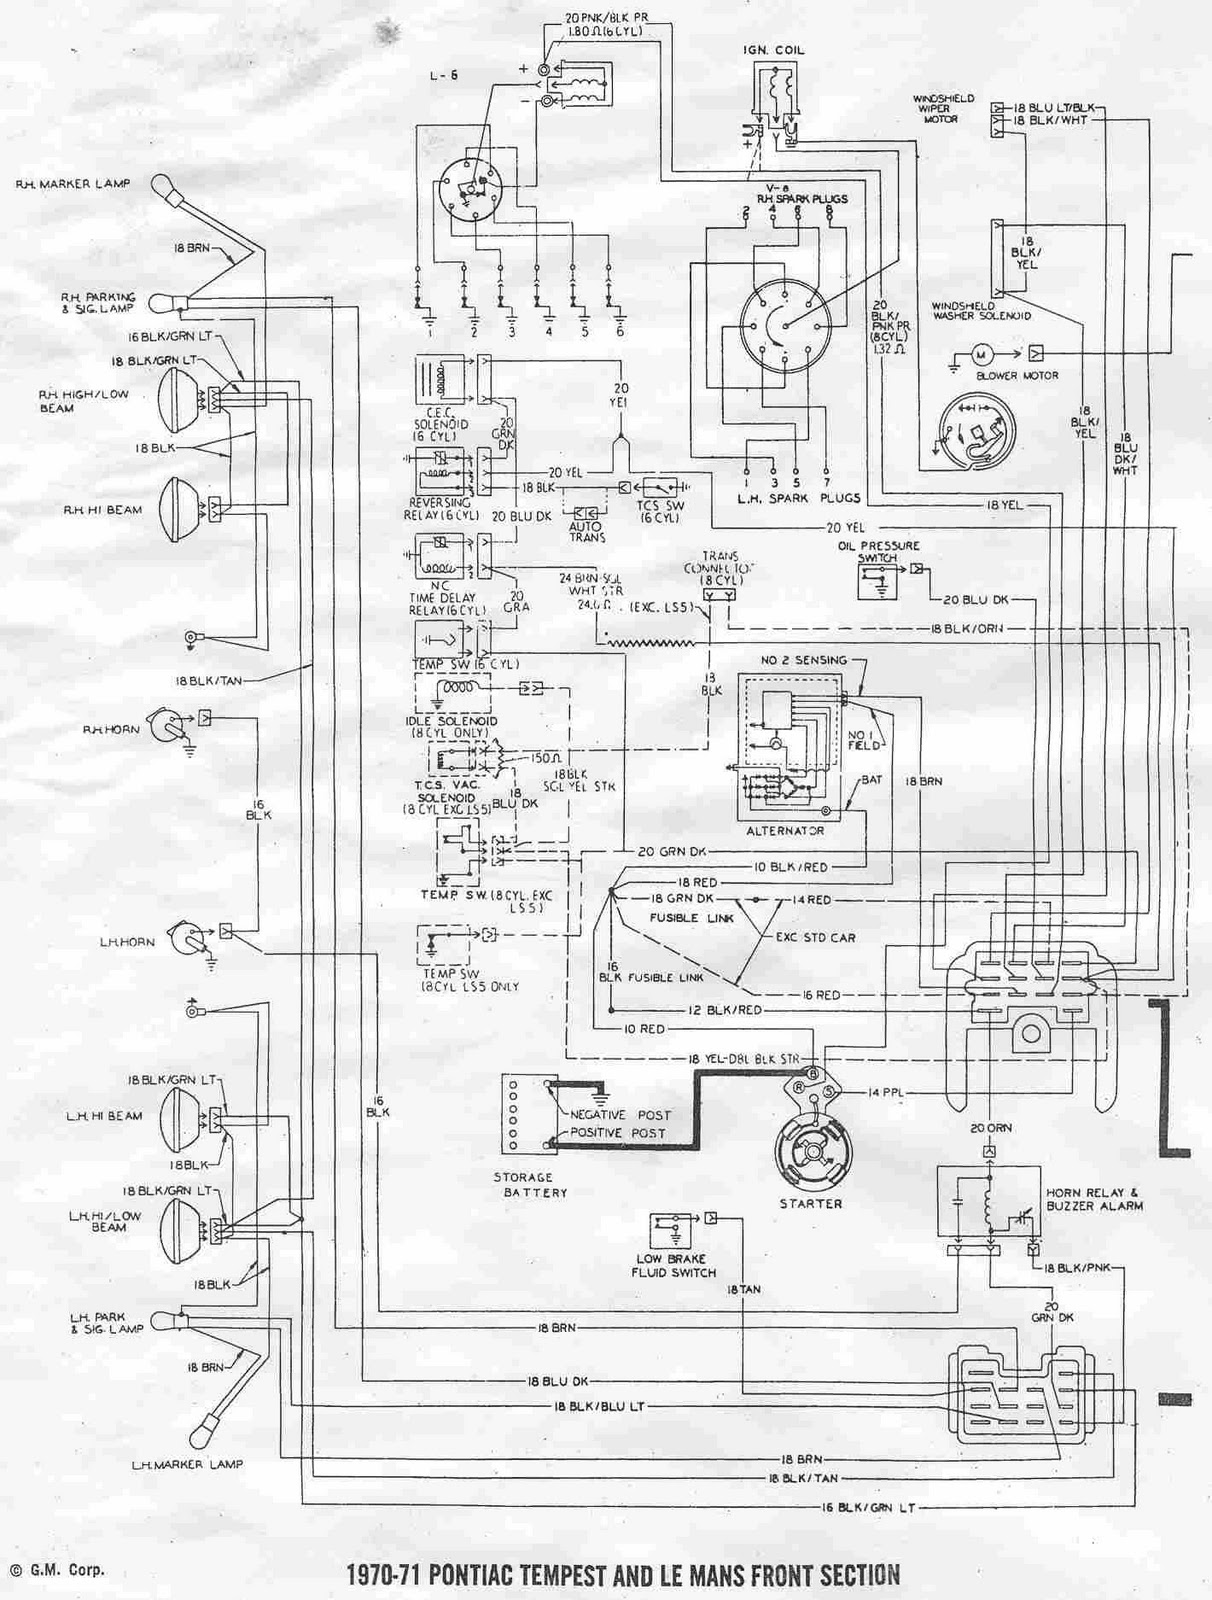 DIAGRAM] 1967 Pontiac Tempest Wiring Diagram FULL Version HD Quality Wiring  Diagram - DIAGRAMAX.GSXBOOKING.ITdiagramax.gsxbooking.it